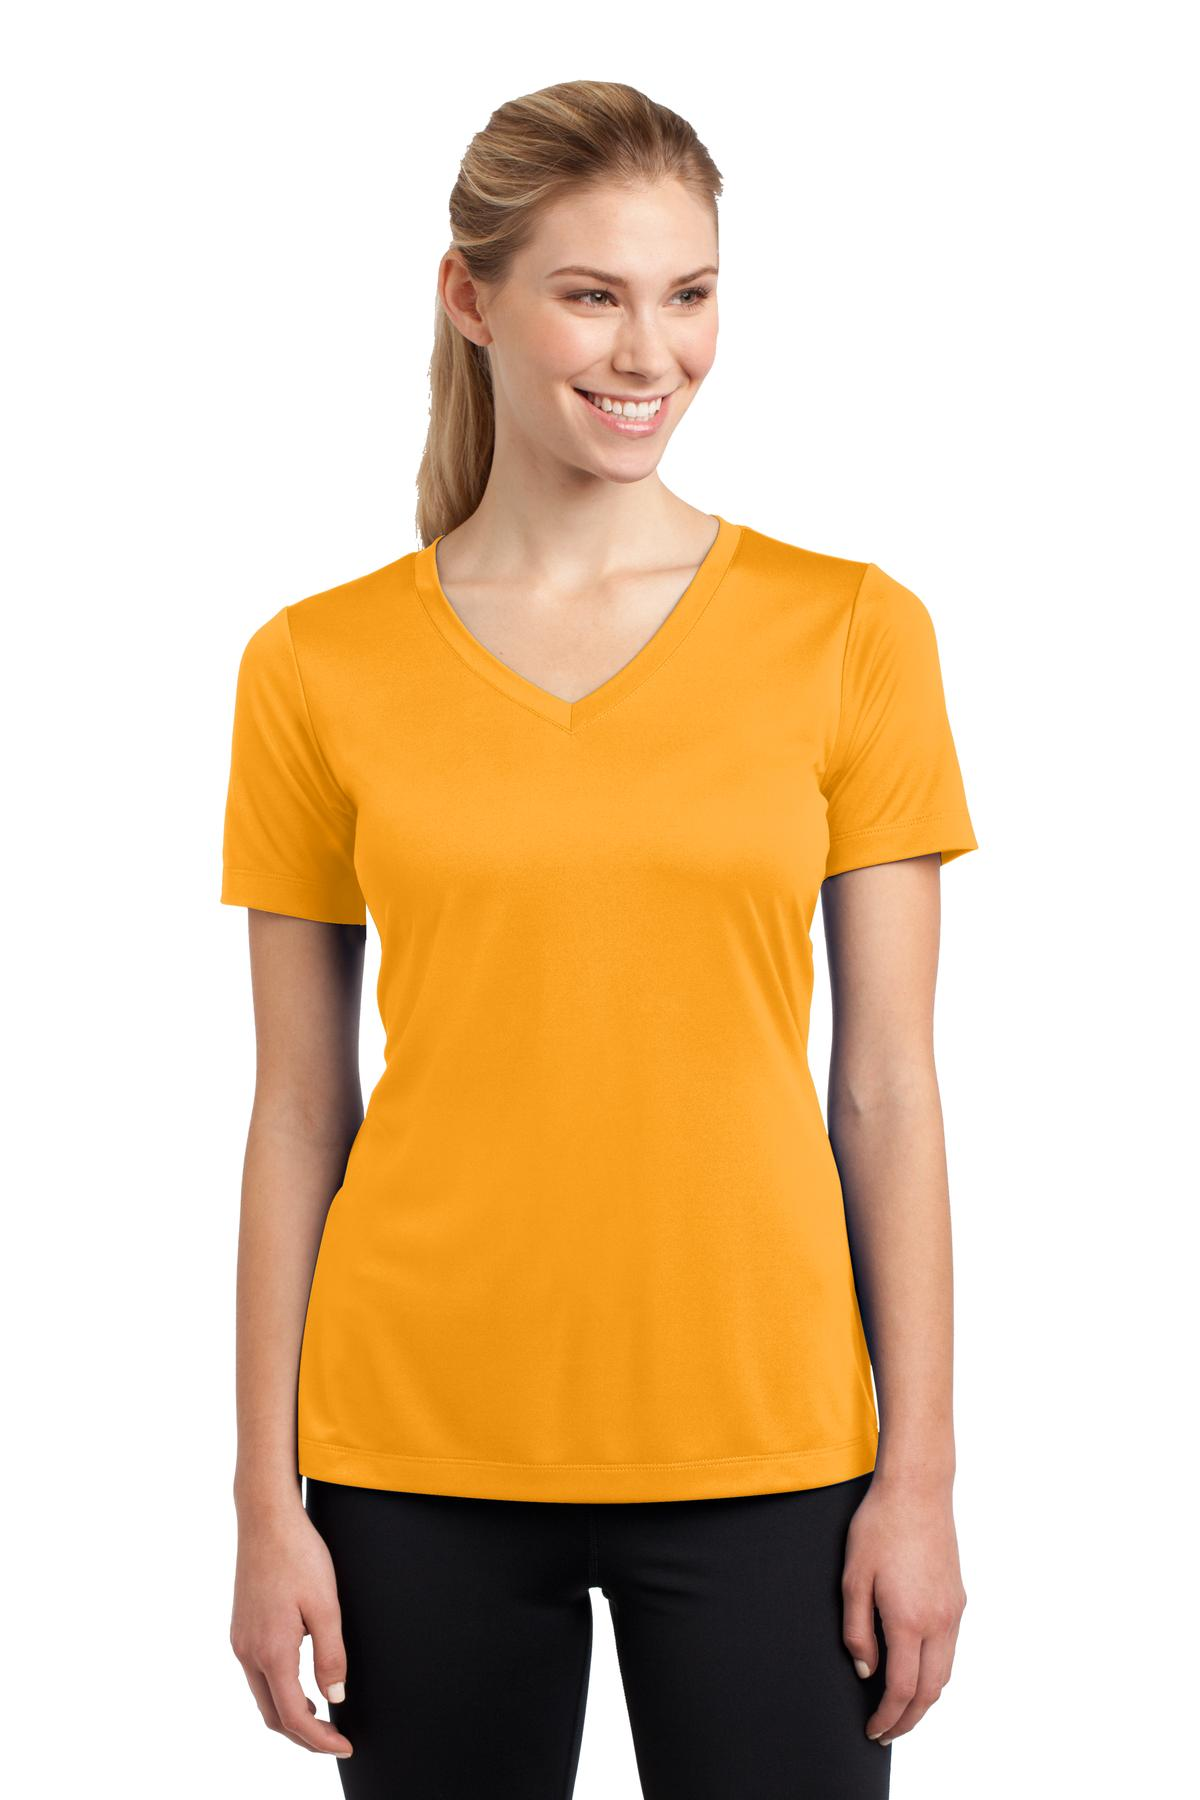 Sport-Tek ®  Ladies PosiCharge ®  Competitor™ V-Neck Tee. LST353 - Gold